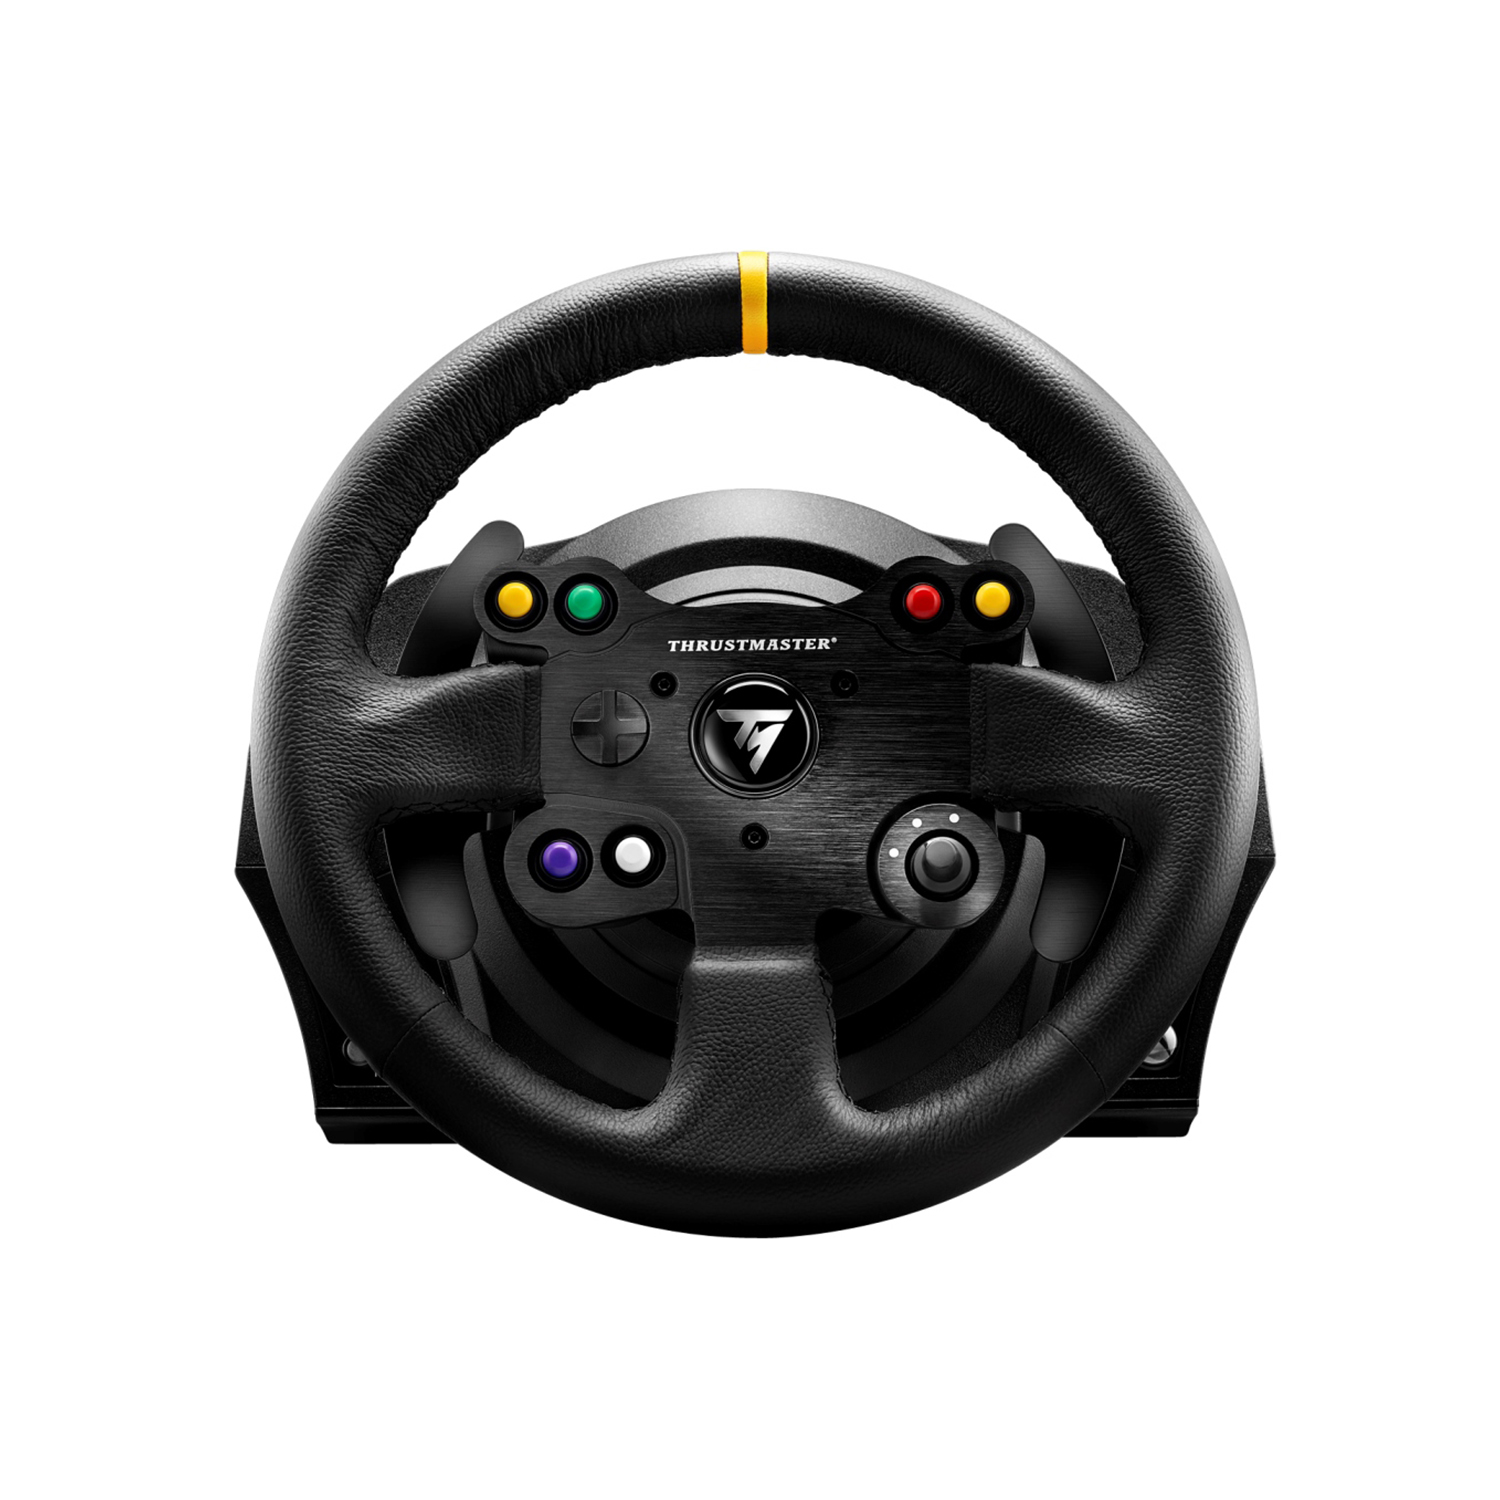 thrustmaster simulateur de course xbox one pas cher achat vente volant pc rueducommerce. Black Bedroom Furniture Sets. Home Design Ideas